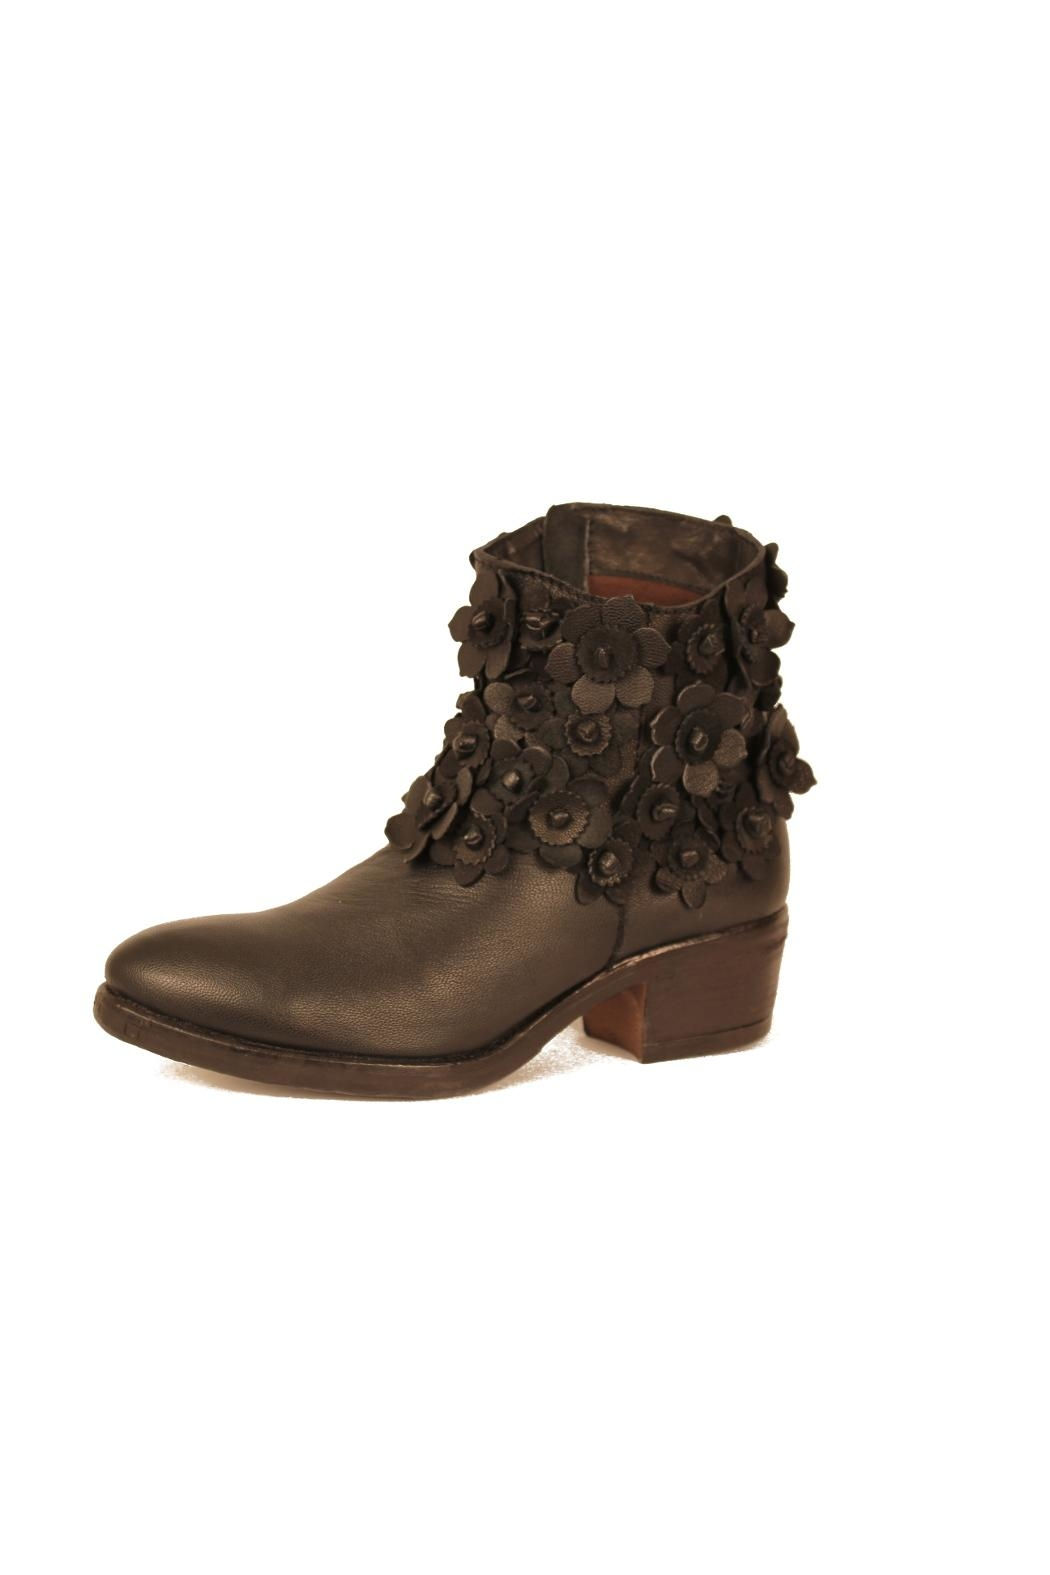 Sheridan Mia Black Flowered Bootie - Main Image